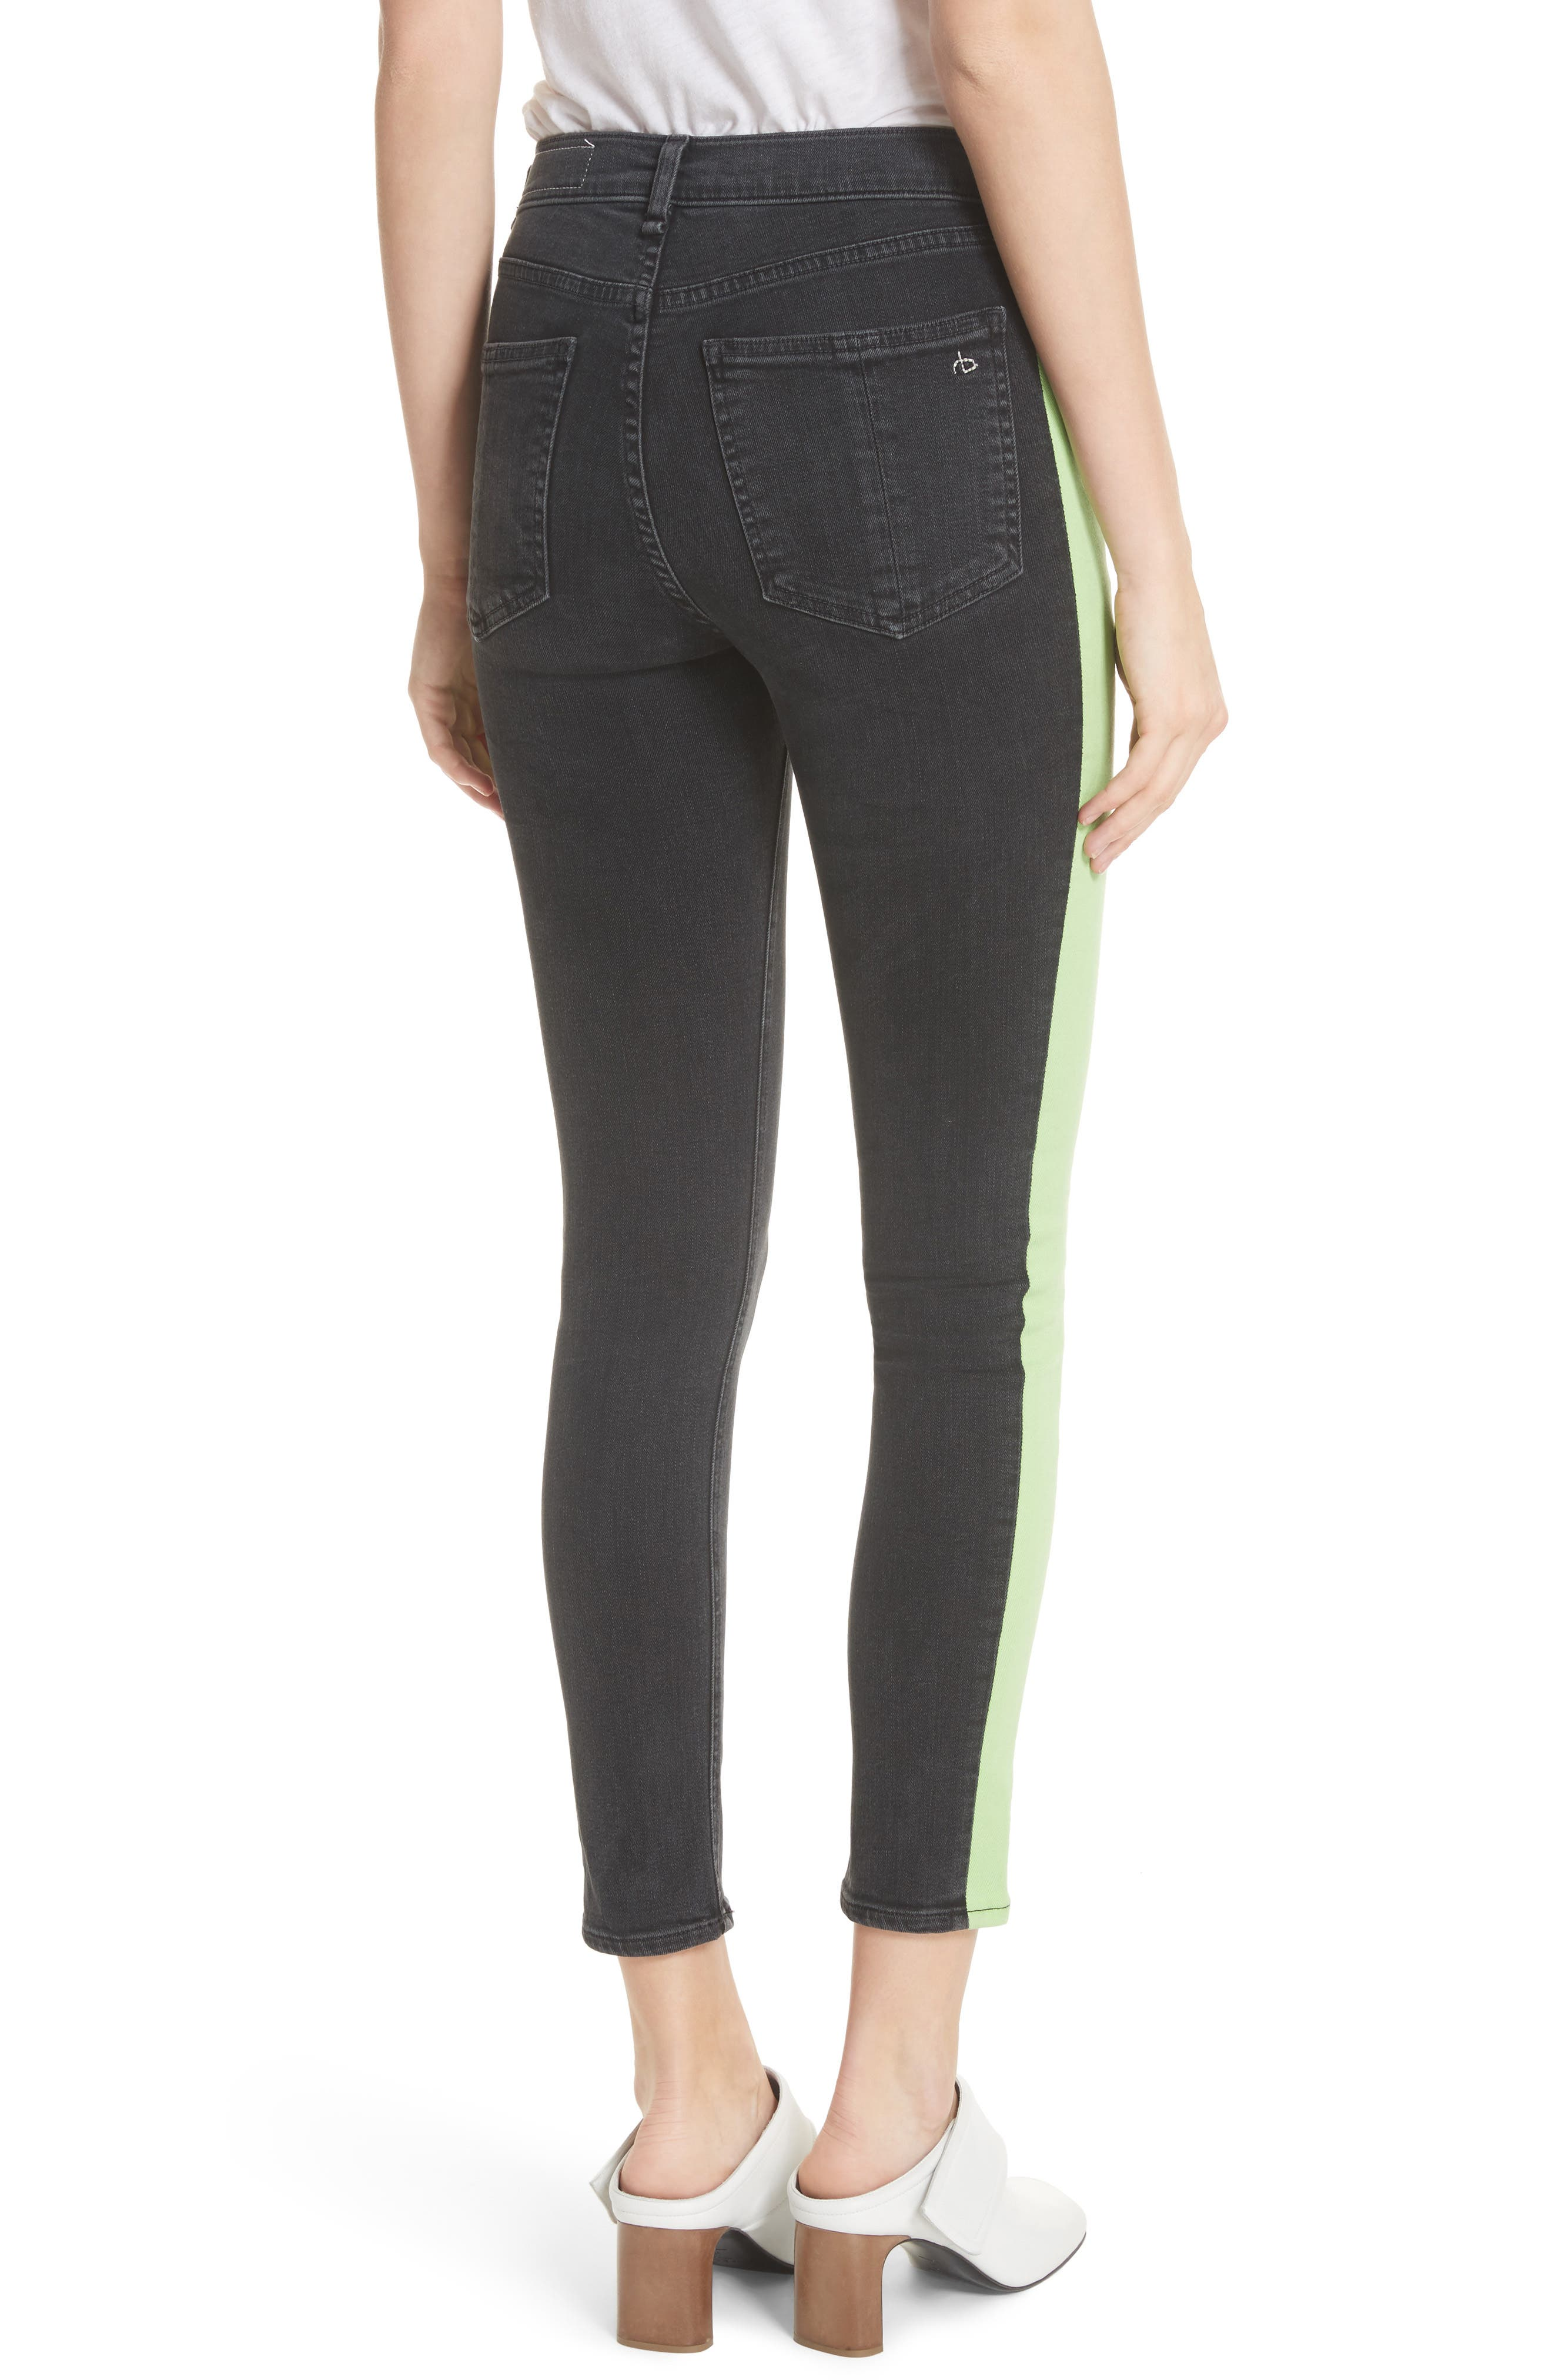 JEAN Mazie High Waist Skinny Jeans,                             Alternate thumbnail 2, color,                             001